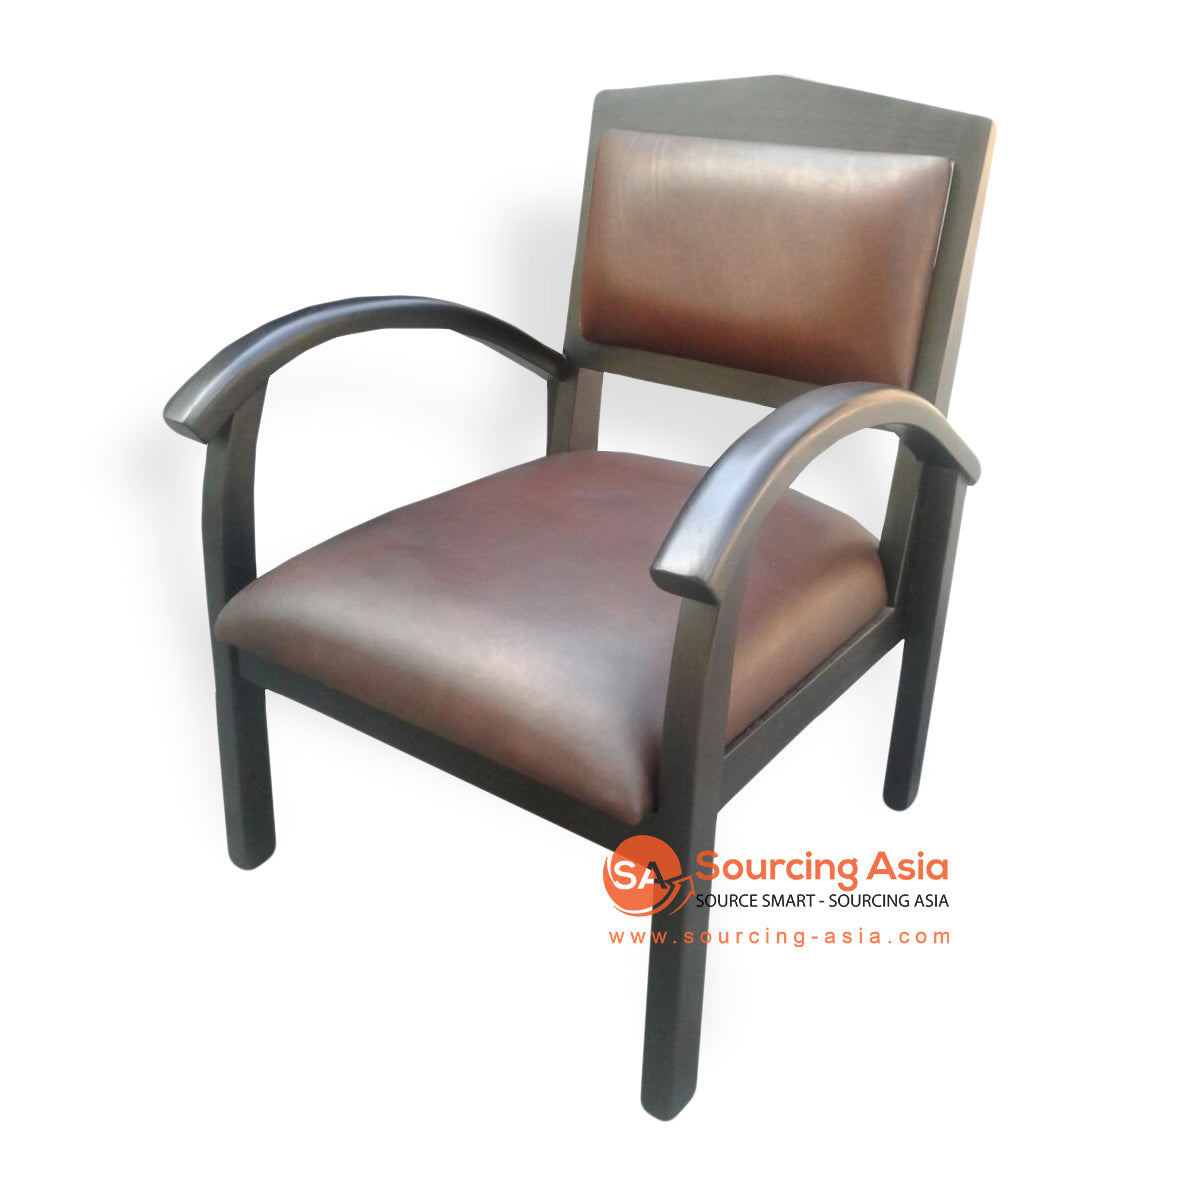 KUSJ053C LEATHER & WOODEN ARM CHAIR